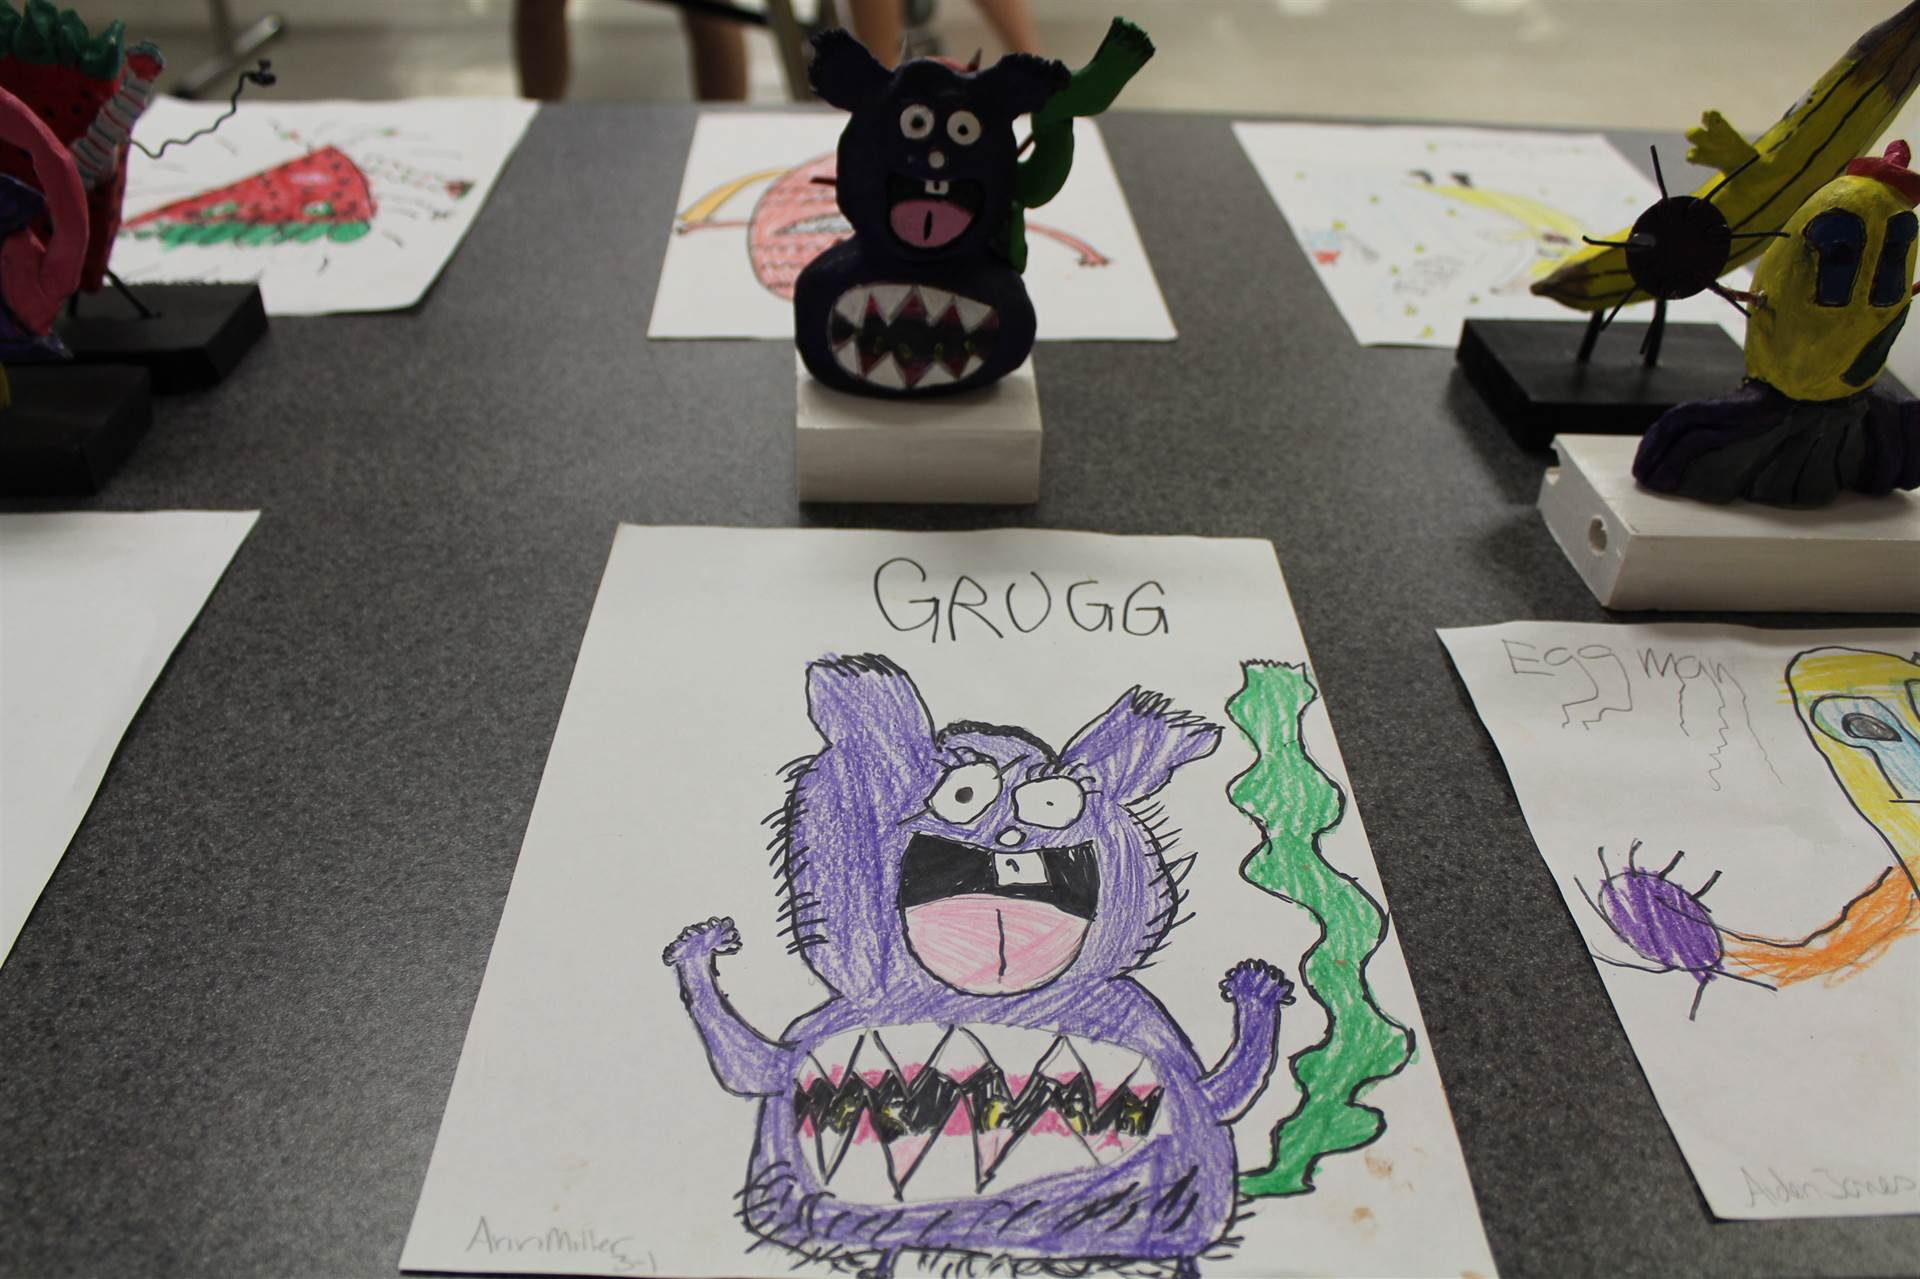 monster 3 d sculpture next to drawn picture 2